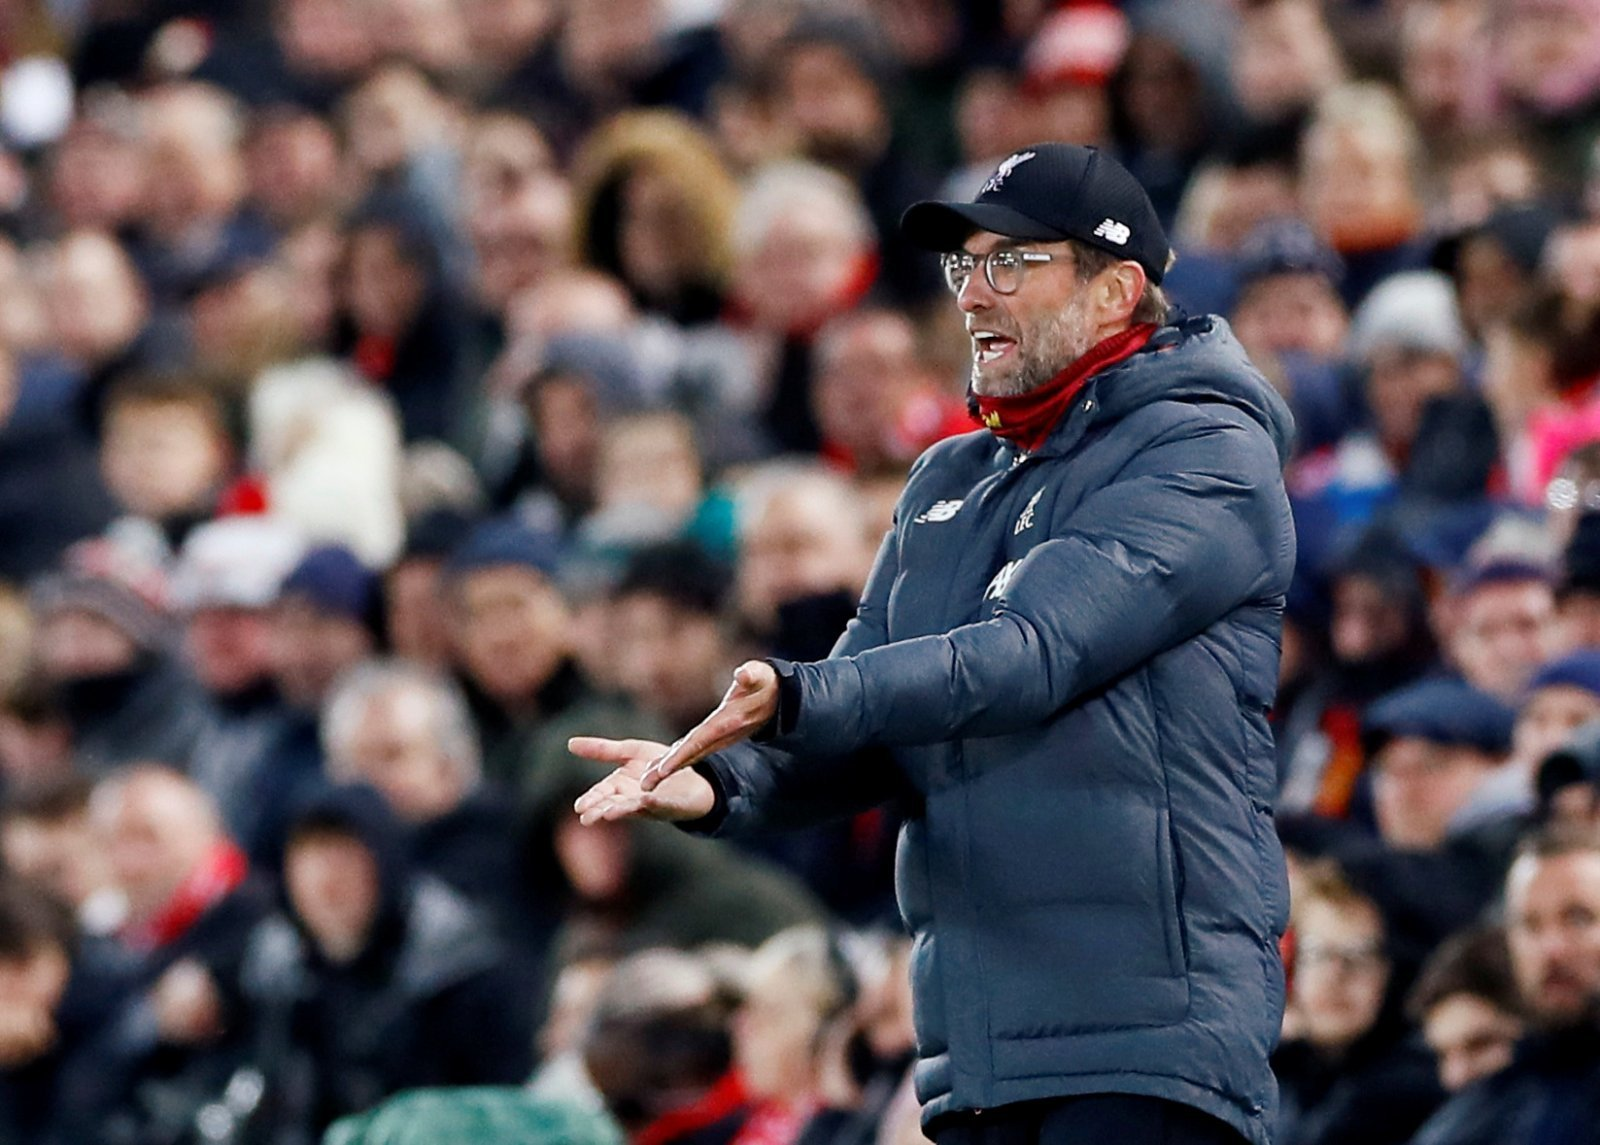 Liverpool: Fans react as Klopp threatens to pull out of the Carabao Cup